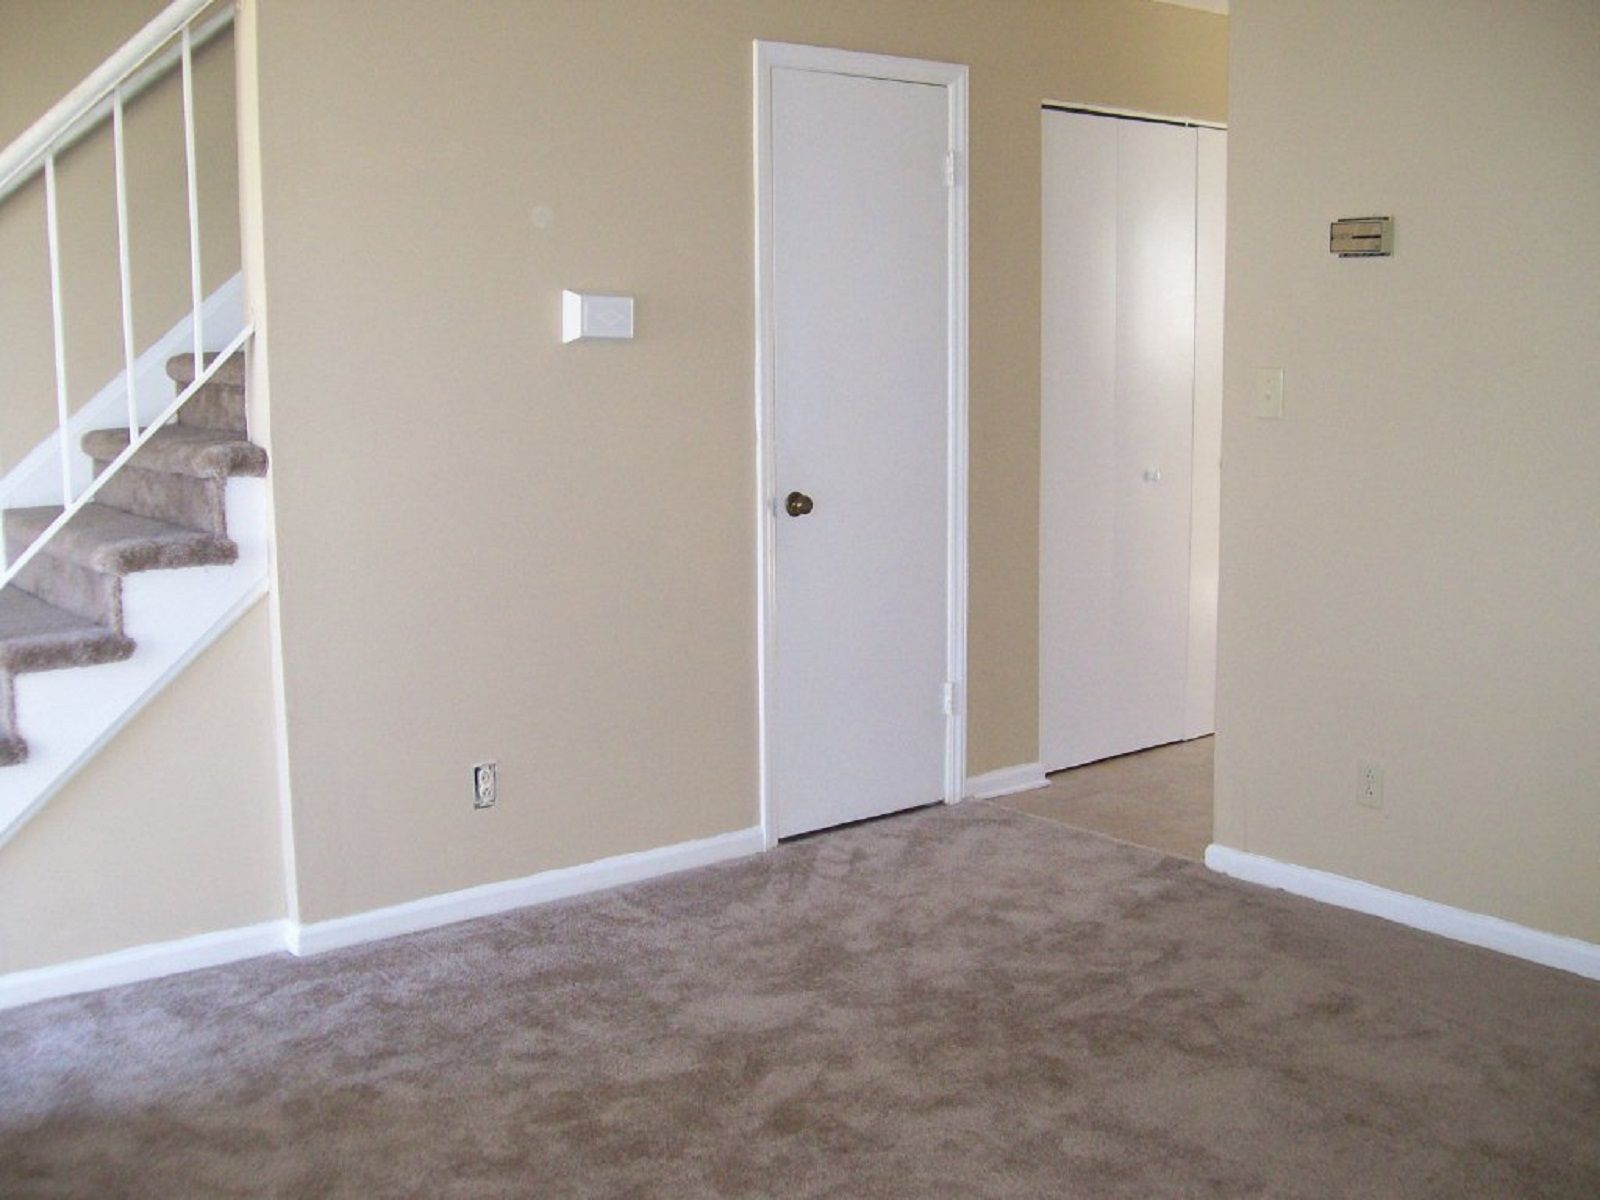 Walls are painted macadamia by sherwin williams one of their top designer colors